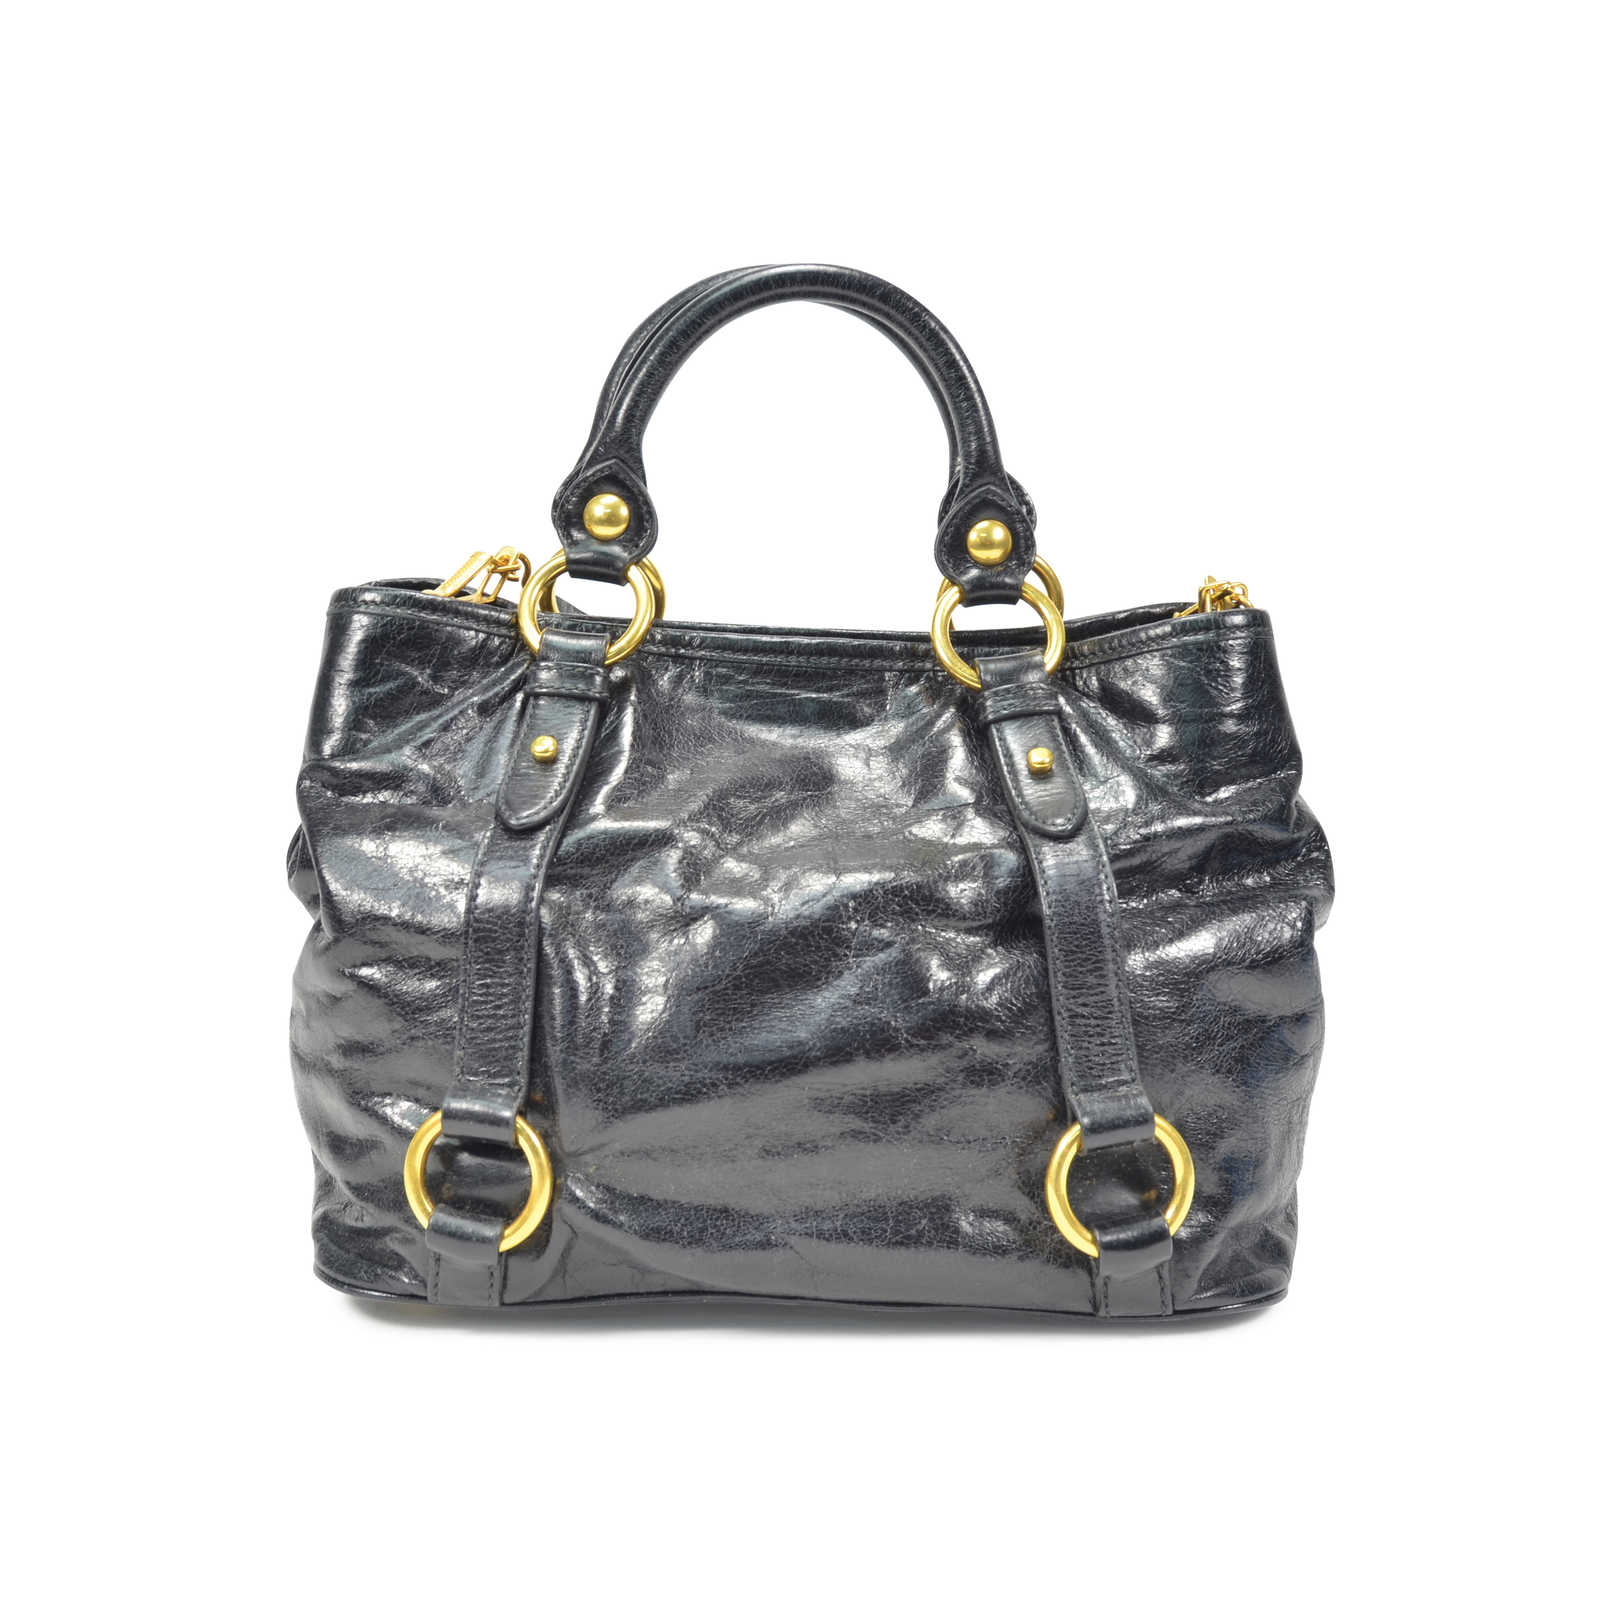 f0456ce4780d ... Authentic Second Hand Miu Miu Vitello Shine Satchel Bag (PSS-320-00007)  ...